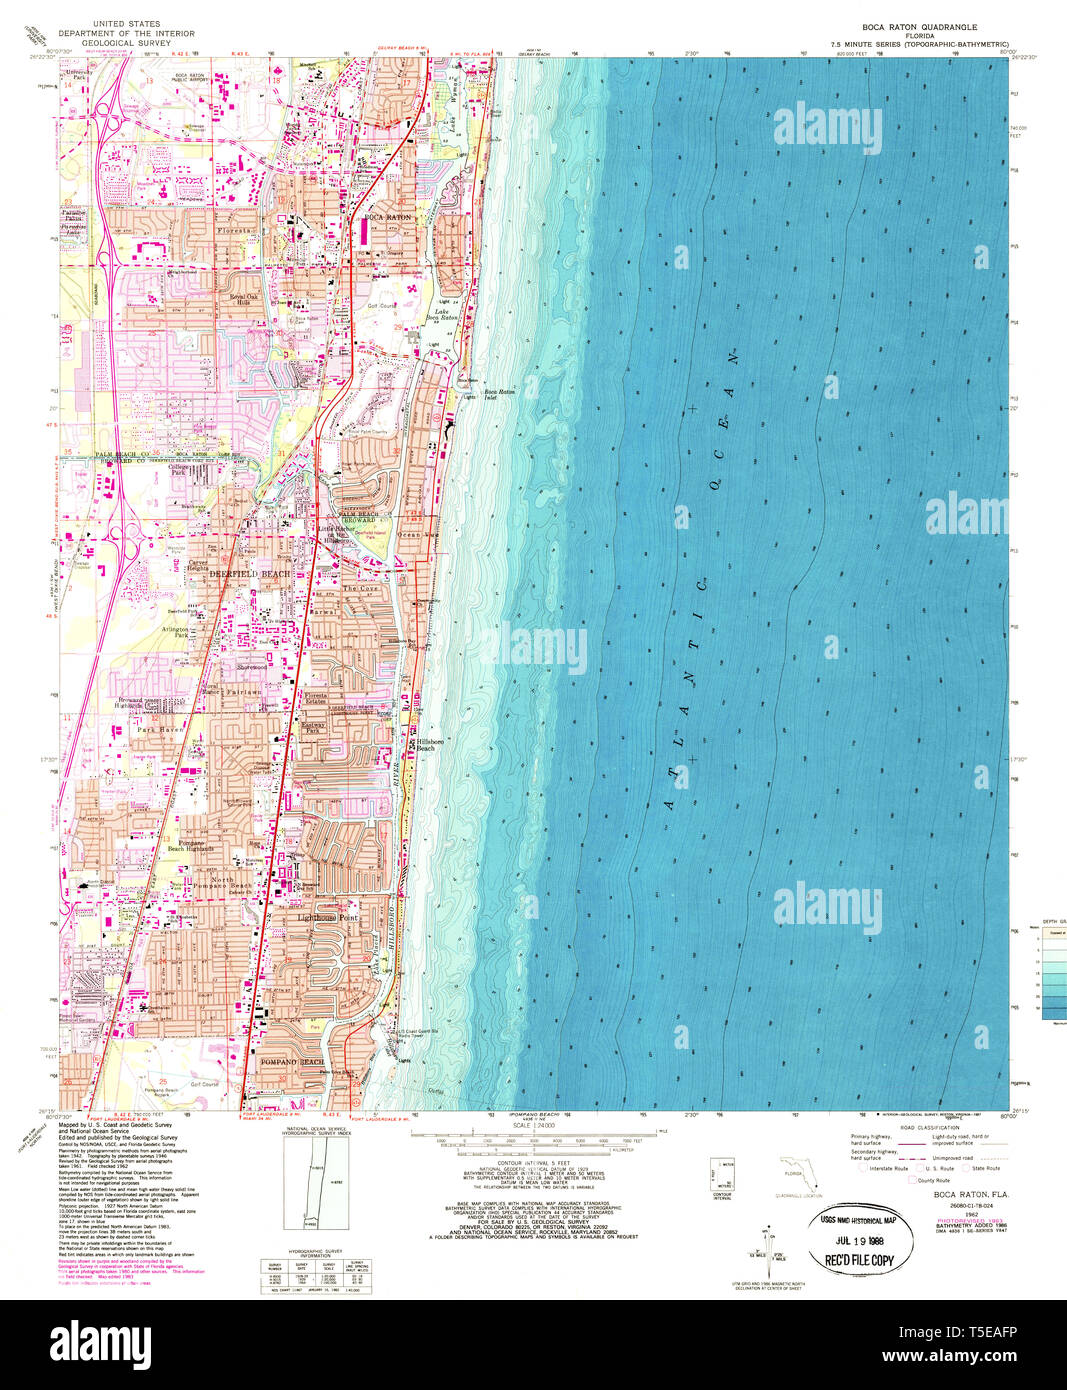 Map Of Florida Showing Boca Raton.Usgs Topo Map Florida Fl Boca Raton 345230 1962 24000 Restoration